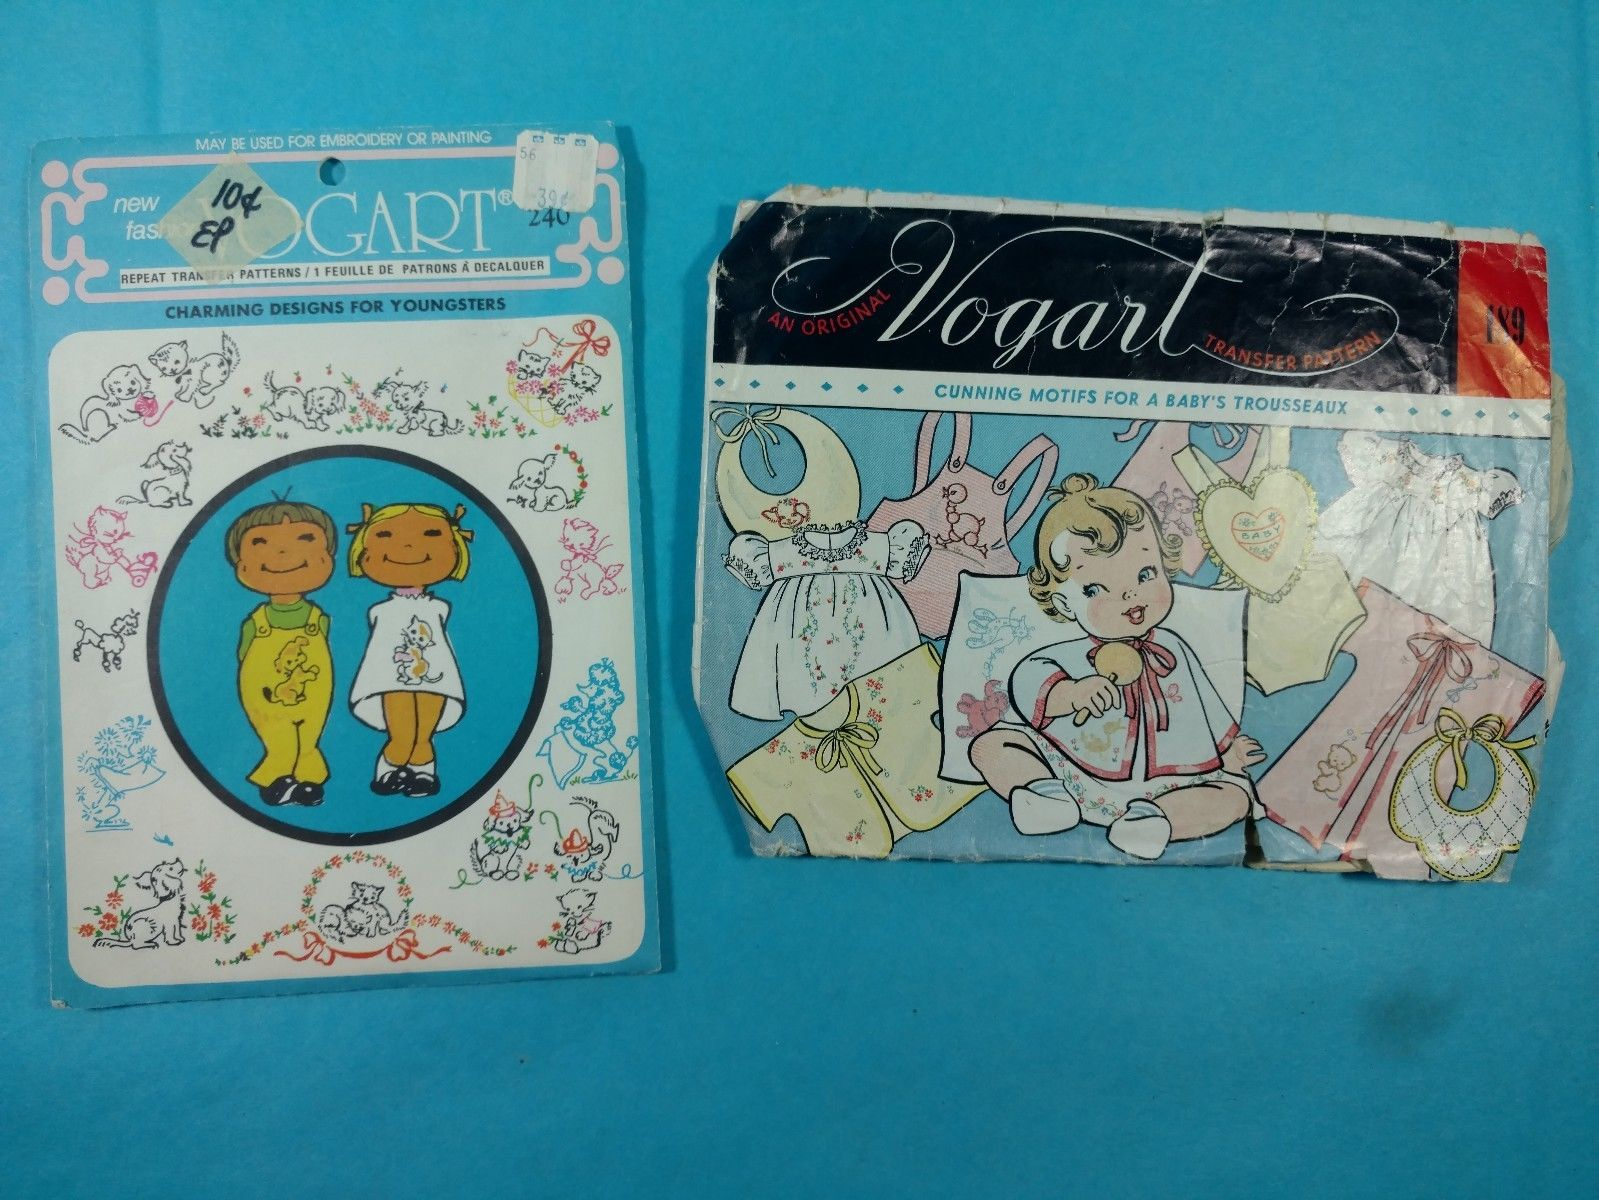 John Deere Embroidery Patterns Lot 148 Group Of 2 Vintage Sewing Patterns Vogart Embroidery Patterns